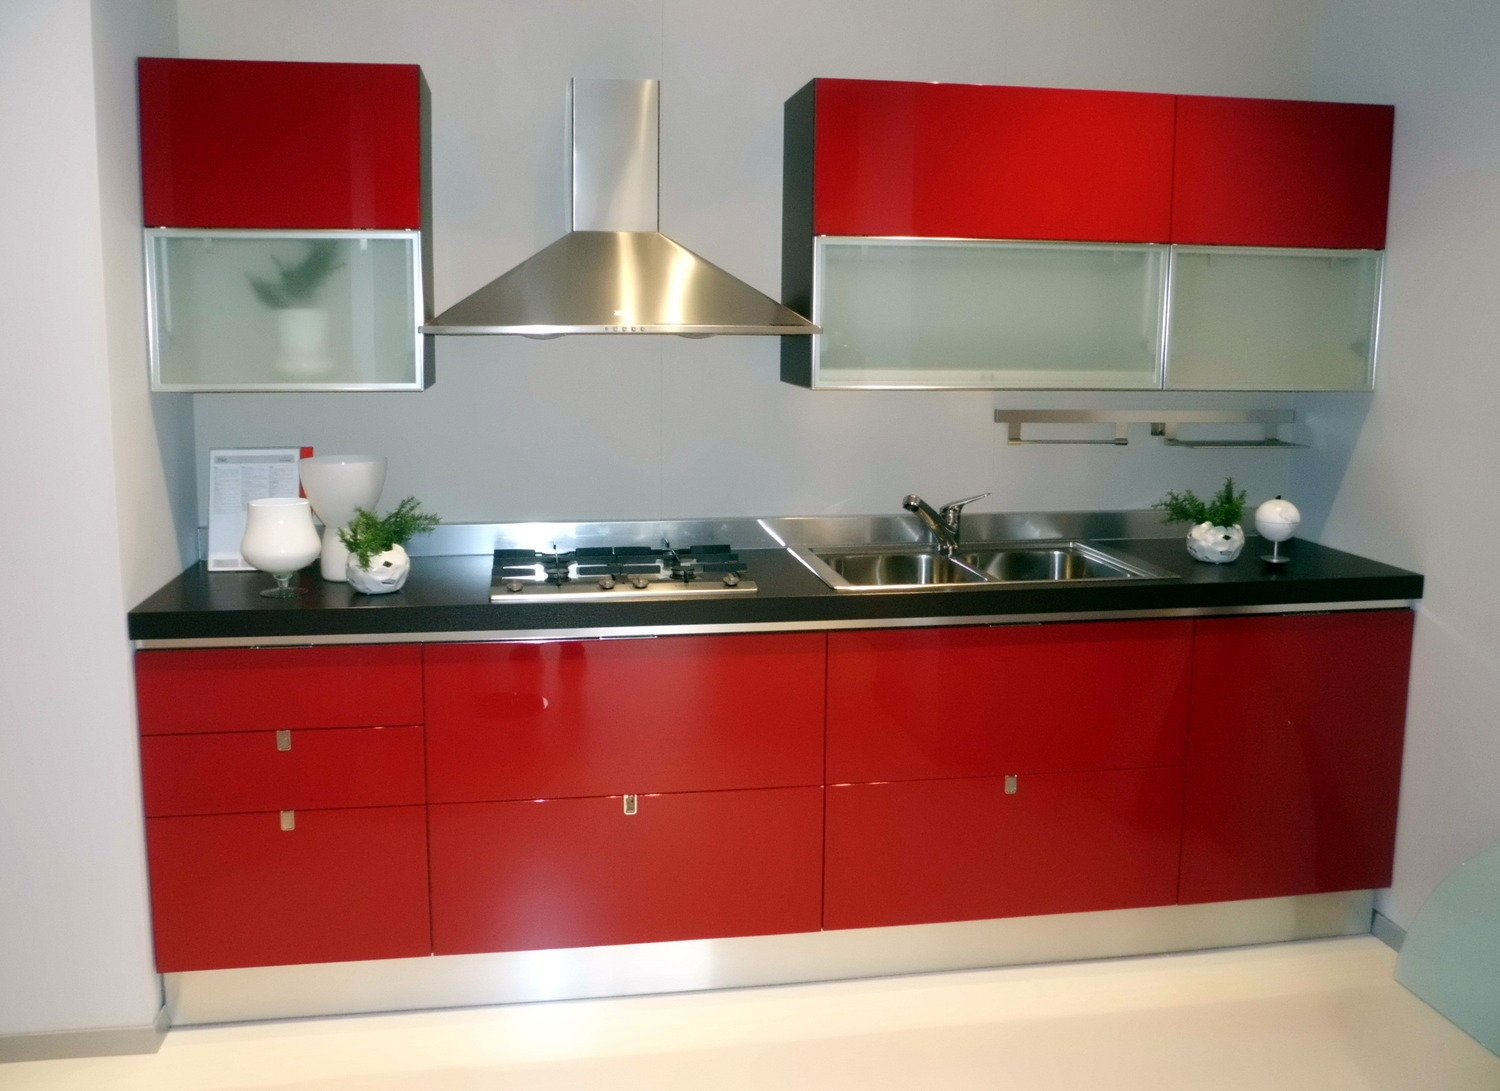 https://www.outletarredamento.it/img/cucine/offert...